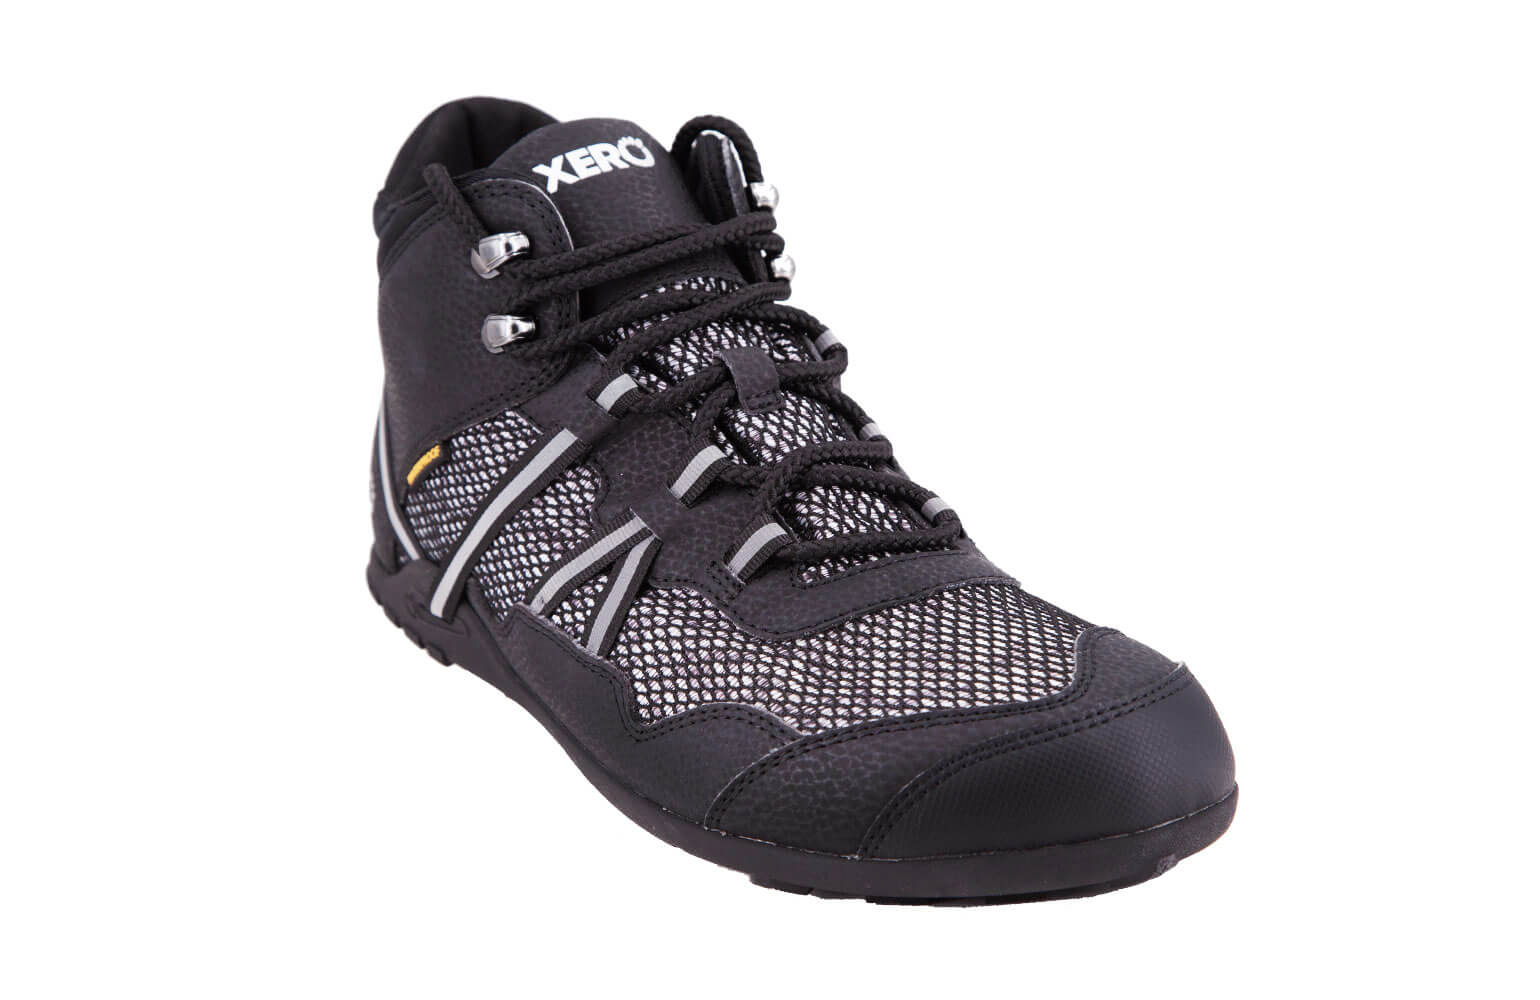 A fully-waterproof barefoot boot. The